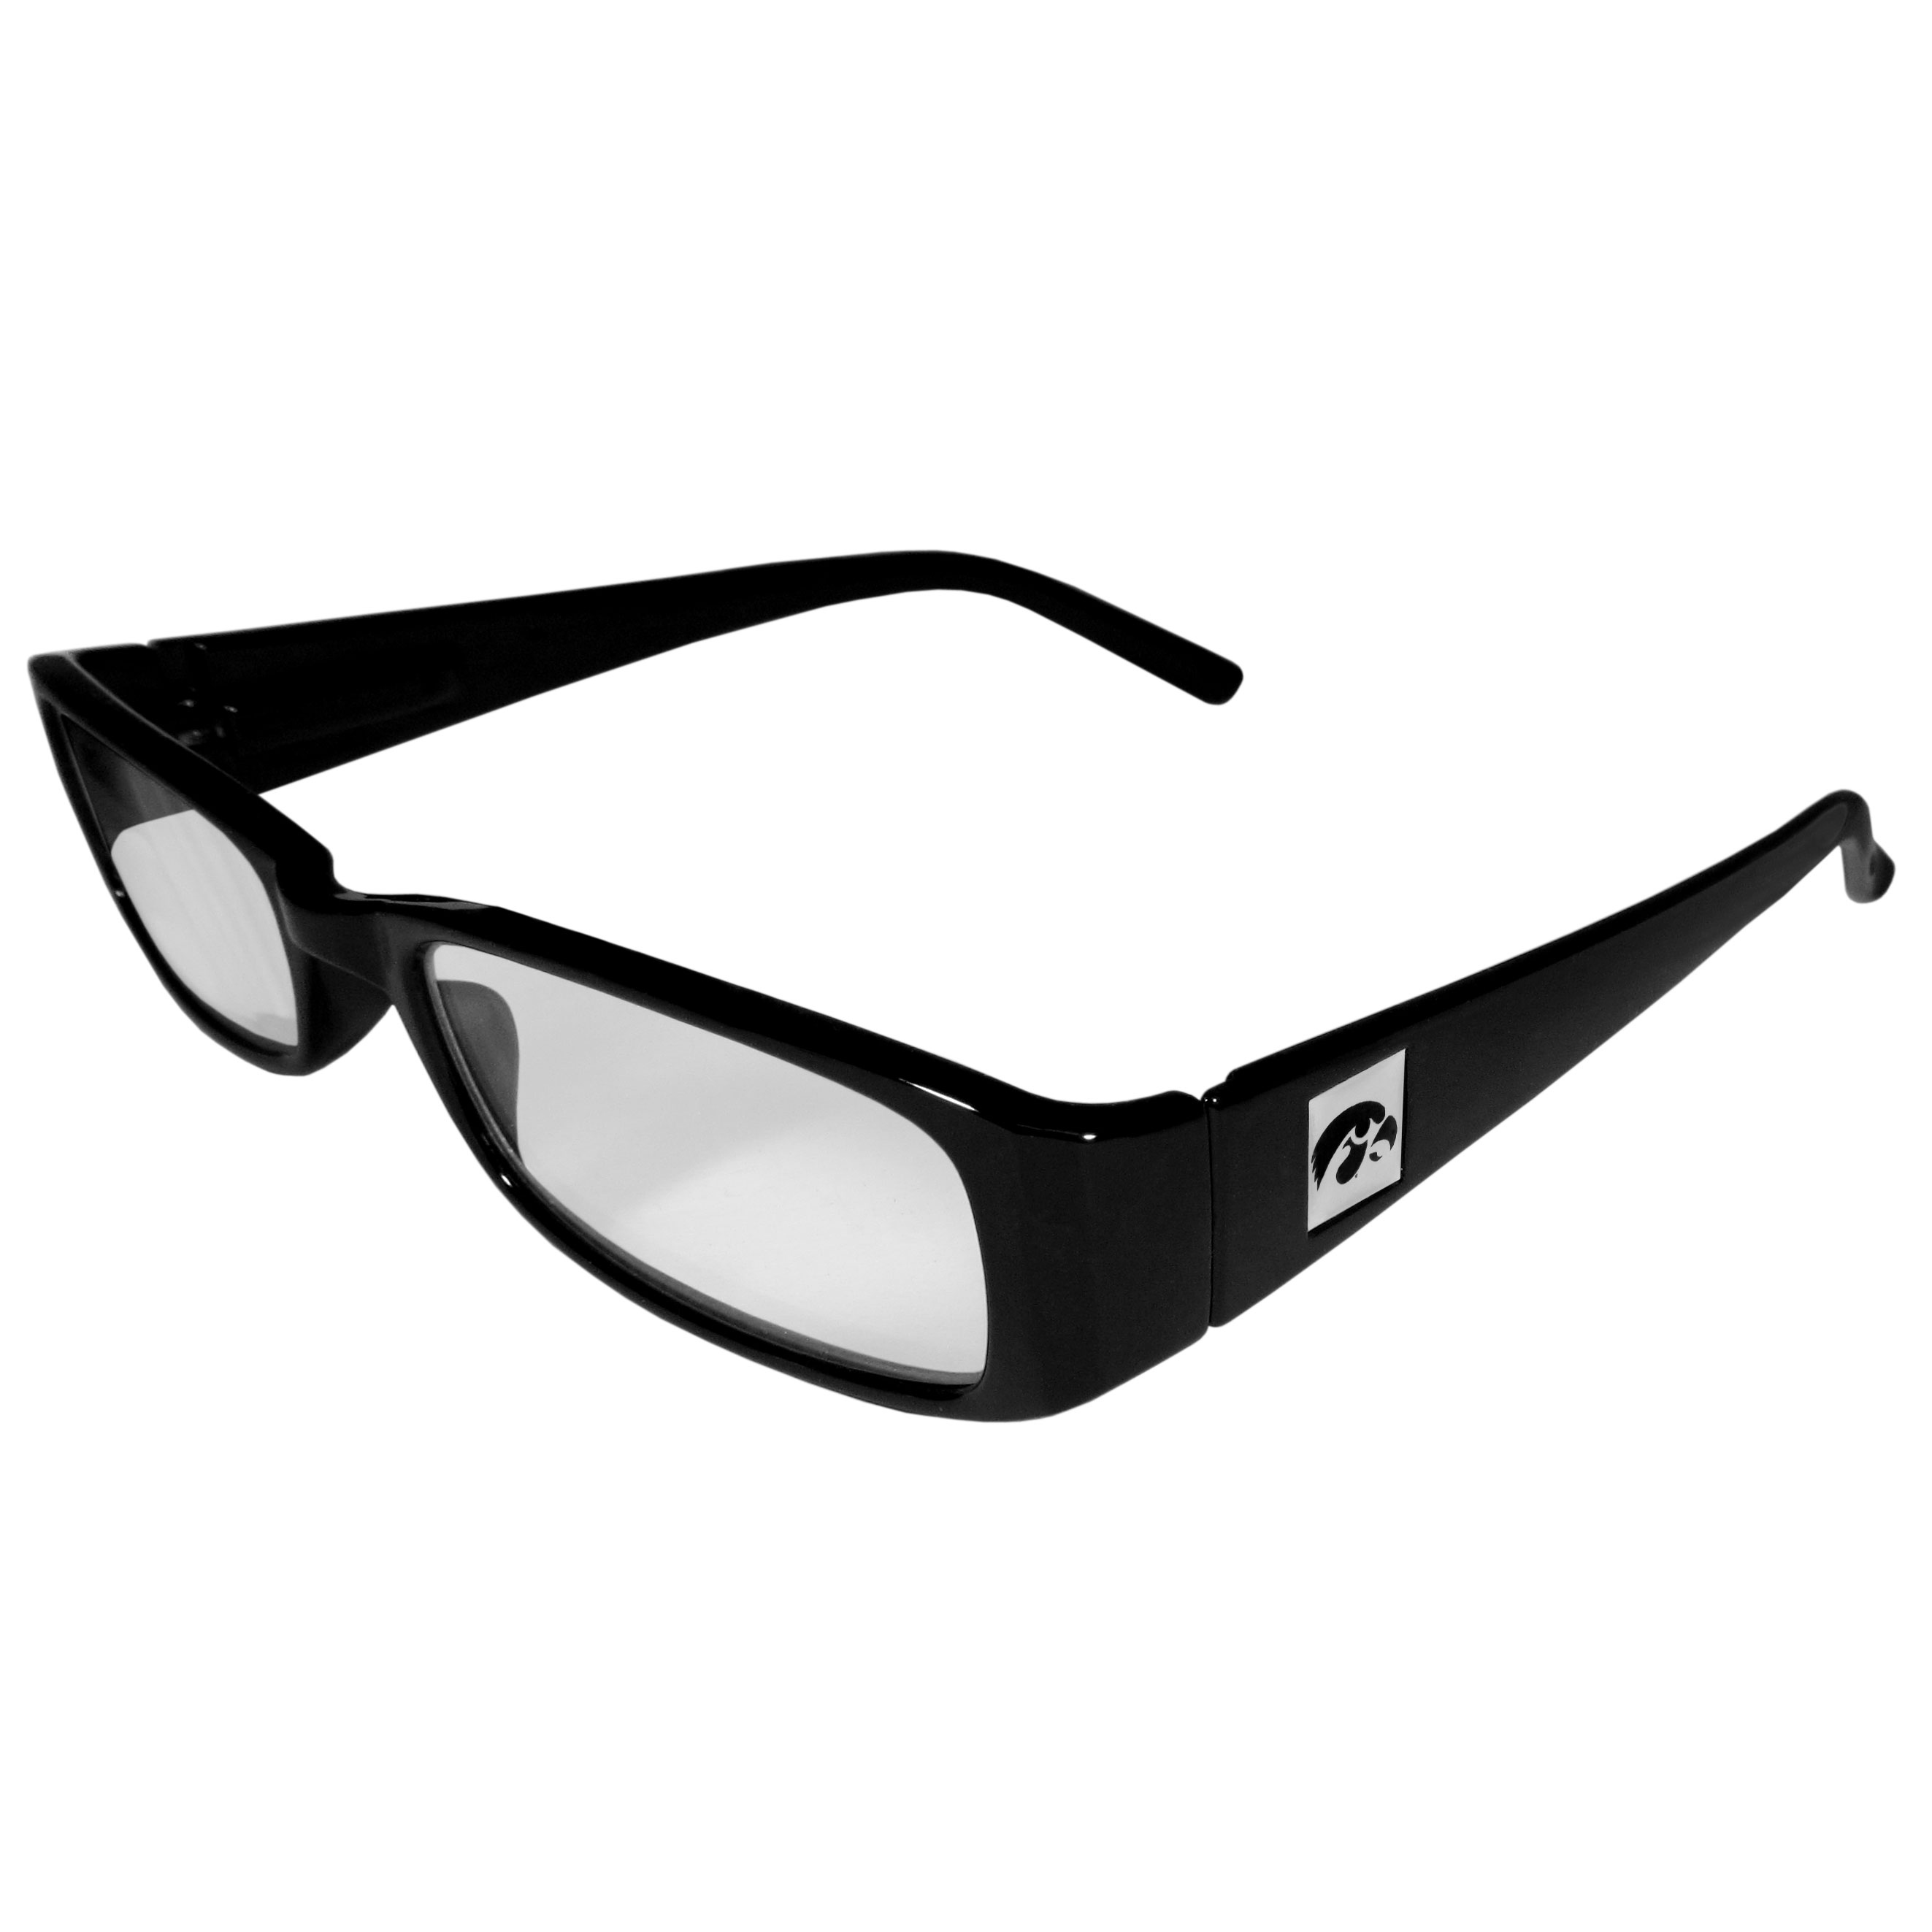 Iowa Hawkeyes Black Reading Glasses +2.00 - Our Iowa Hawkeyes reading glasses are 5.25 inches wide and feature the team logo on each arm. Magnification Power 2.00